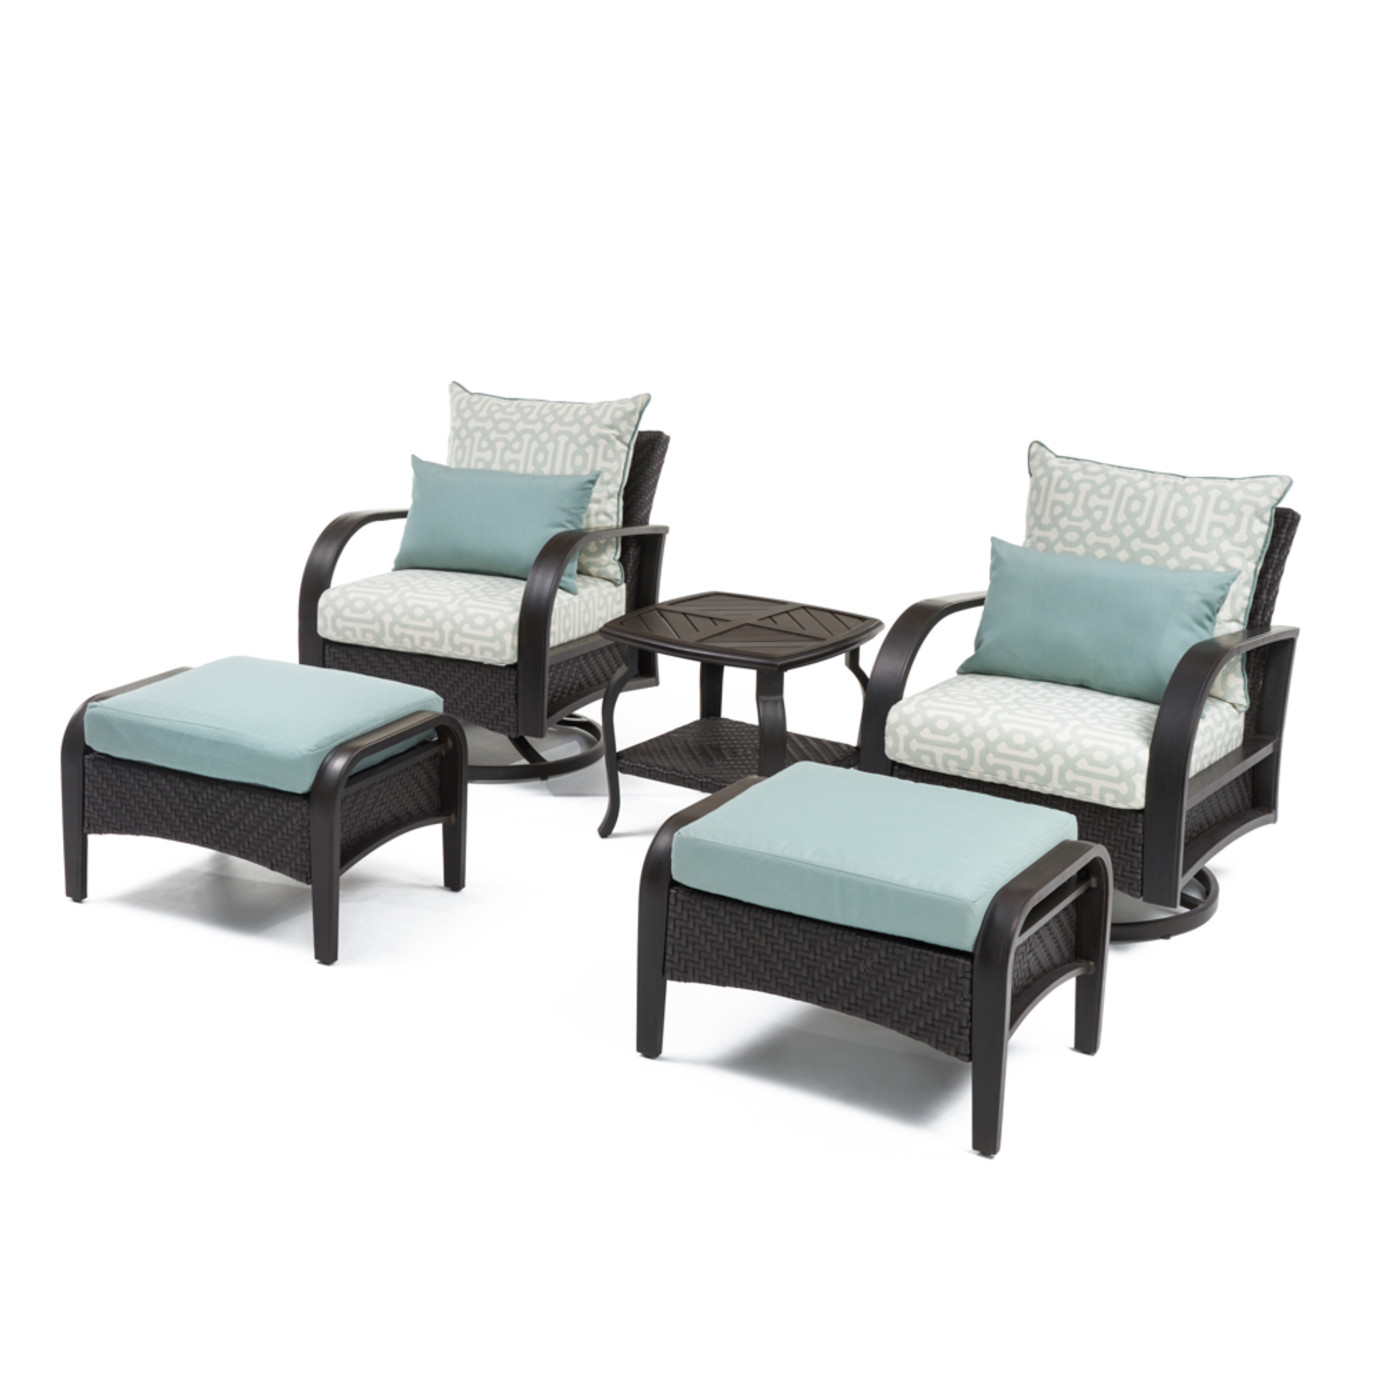 Barcelo™ 5pc Deluxe Motion Club & Ottoman Set - Spa Blue